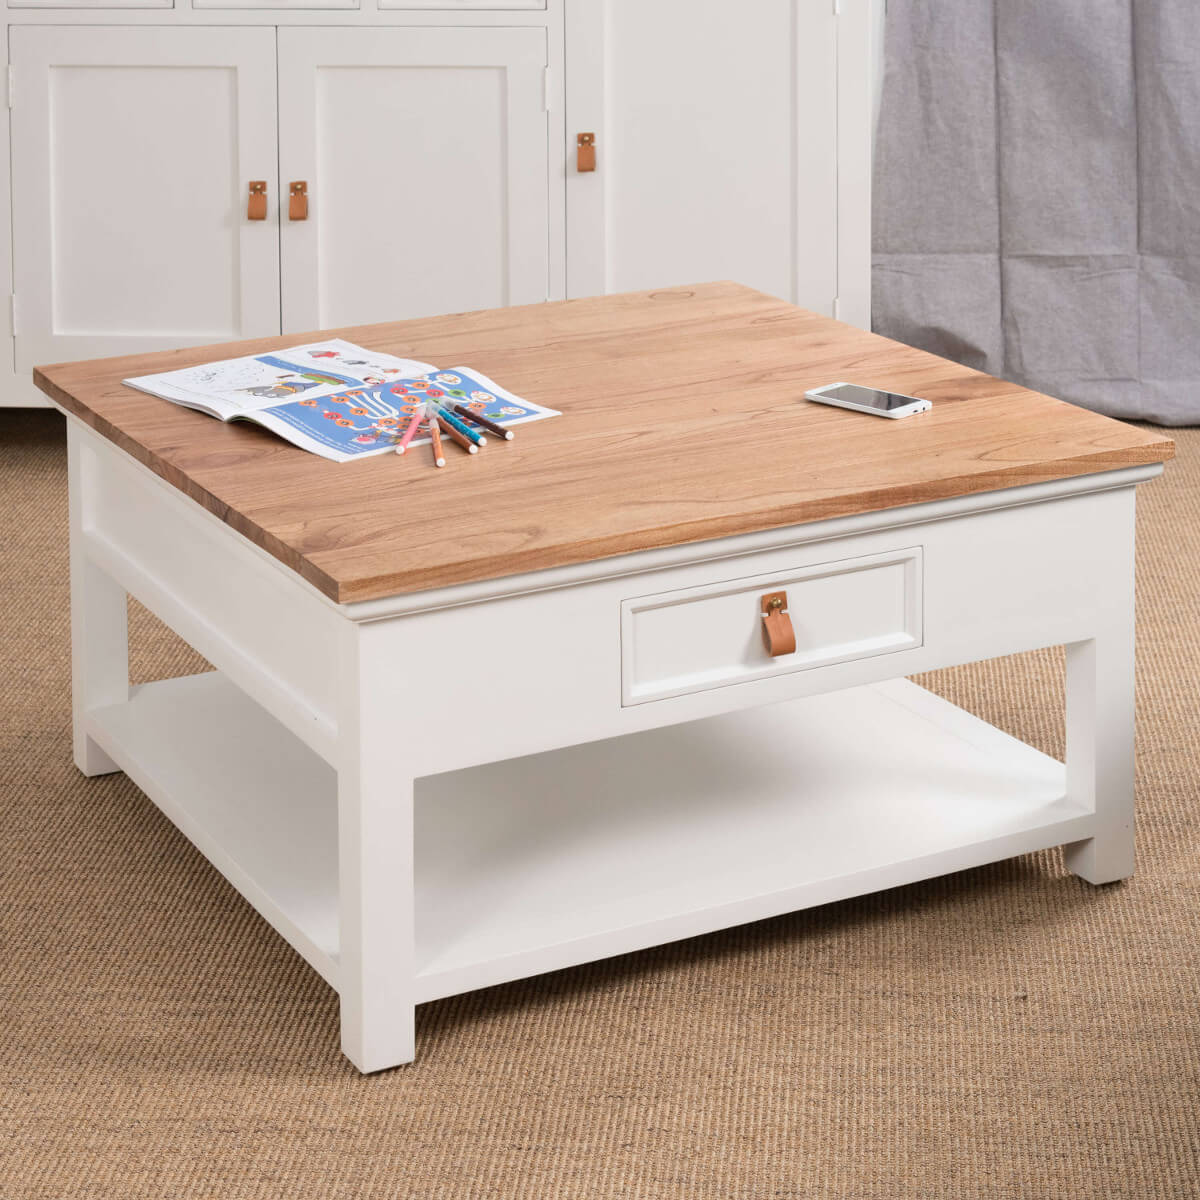 table basse blanche table basse acajou carr e bois massif chic 90 cm. Black Bedroom Furniture Sets. Home Design Ideas